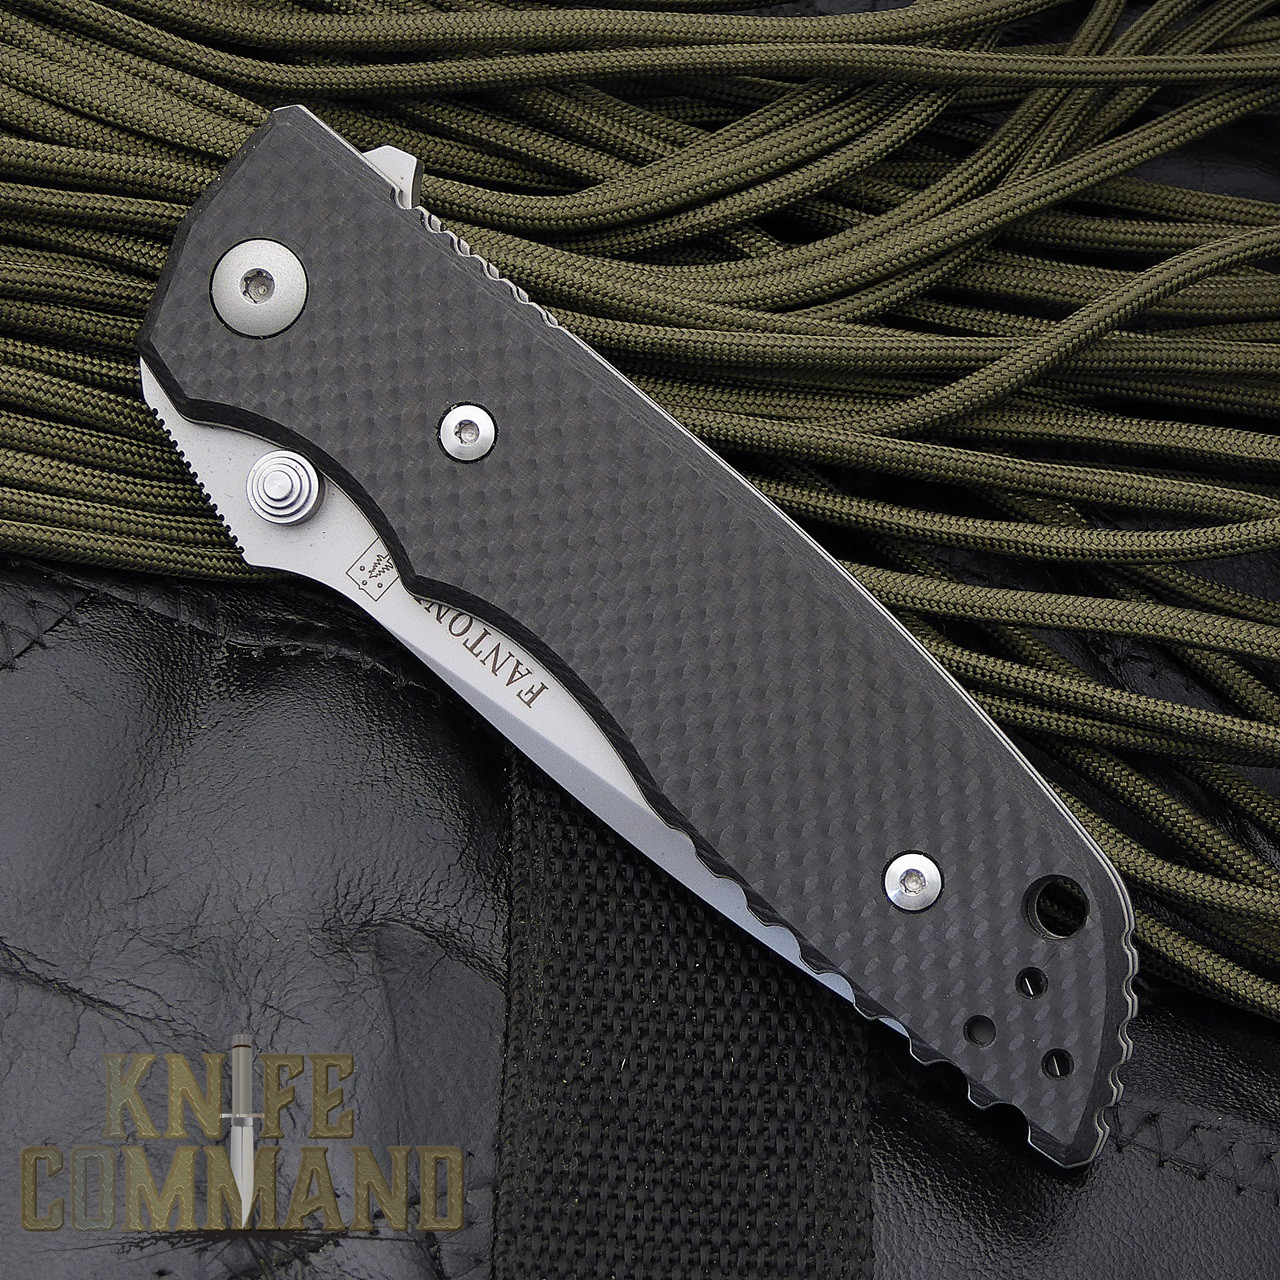 Fantoni HB 01 William Harsey Carbon Fiber Combat Folder Tactical Knife.  Top of the line.